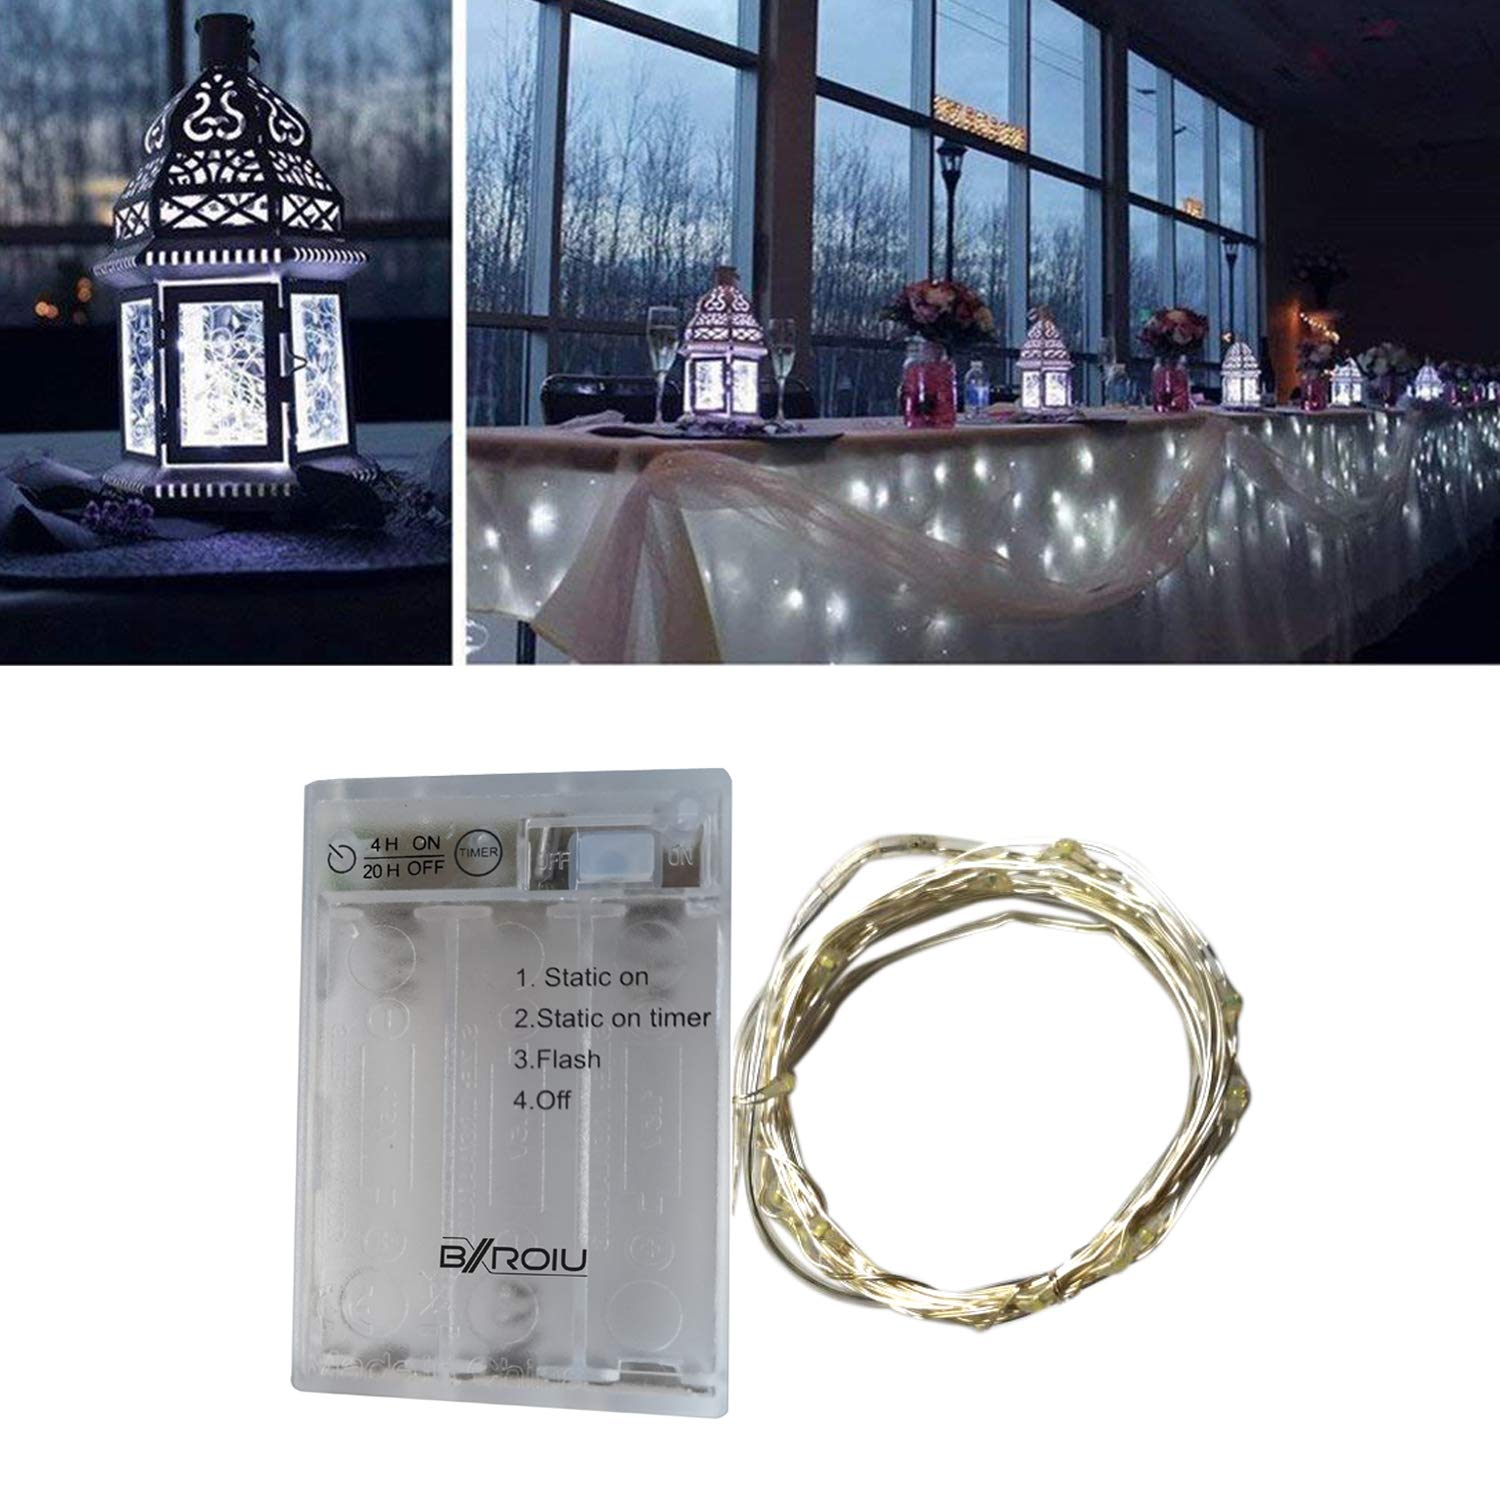 BXROIU 2 x Fairy String Lights Battery Operated, Silver Wire 3 Mode Chains with Timer 6.5ft 20 LEDs Firefly String Lights for Bedroom Christmas Party Wedding Decoration (Cool White)